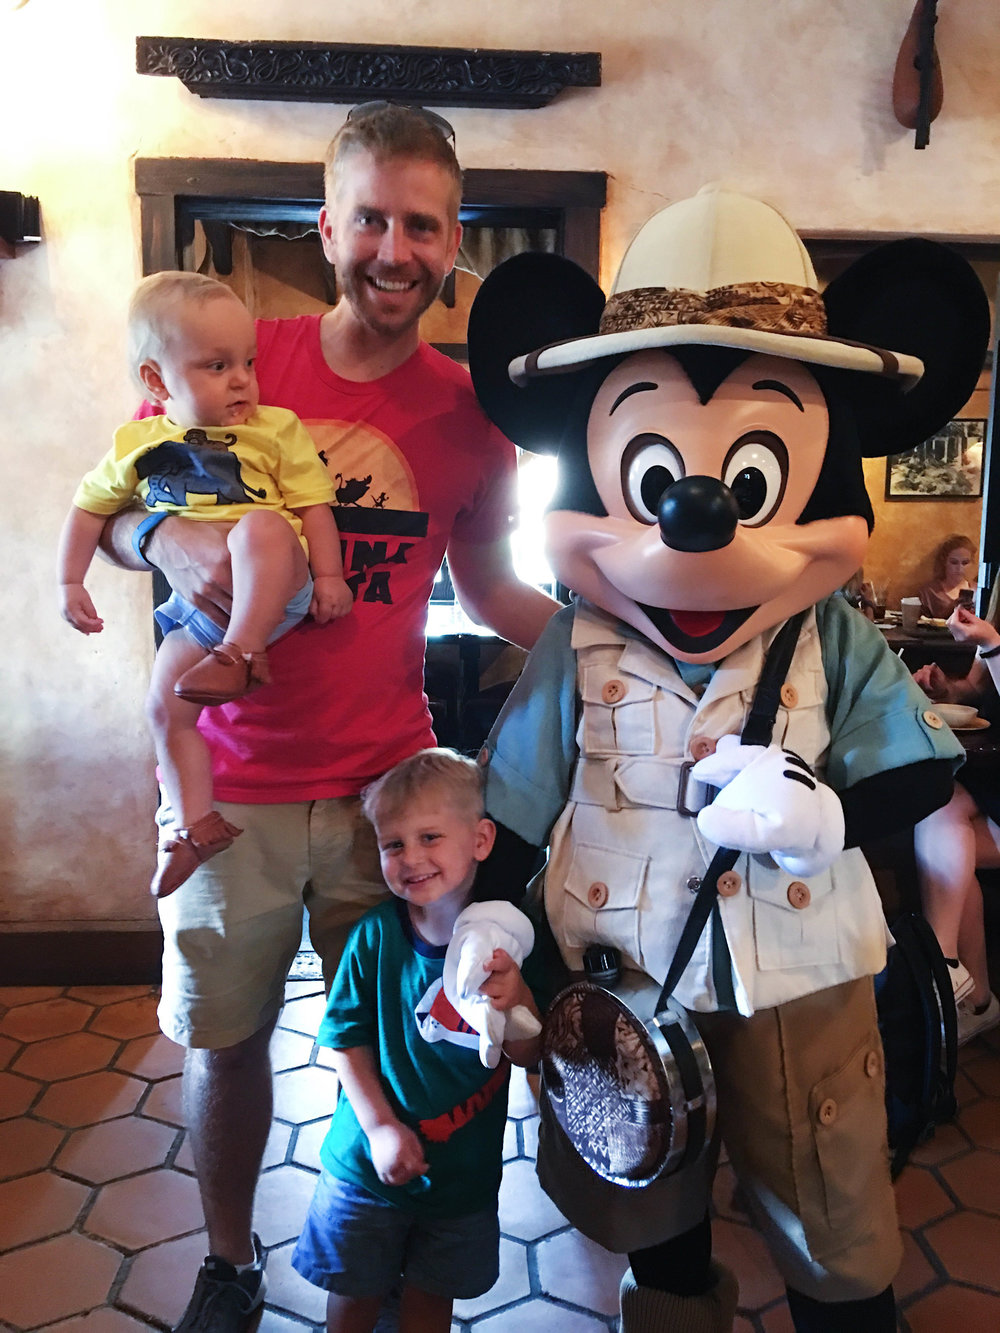 Everett met Mickey twice and LOVED him. Daxton hated every character he met. Please note both of their faces in the next few photos - they couldn't feel more differently about meeting characters. Pretty priceless.